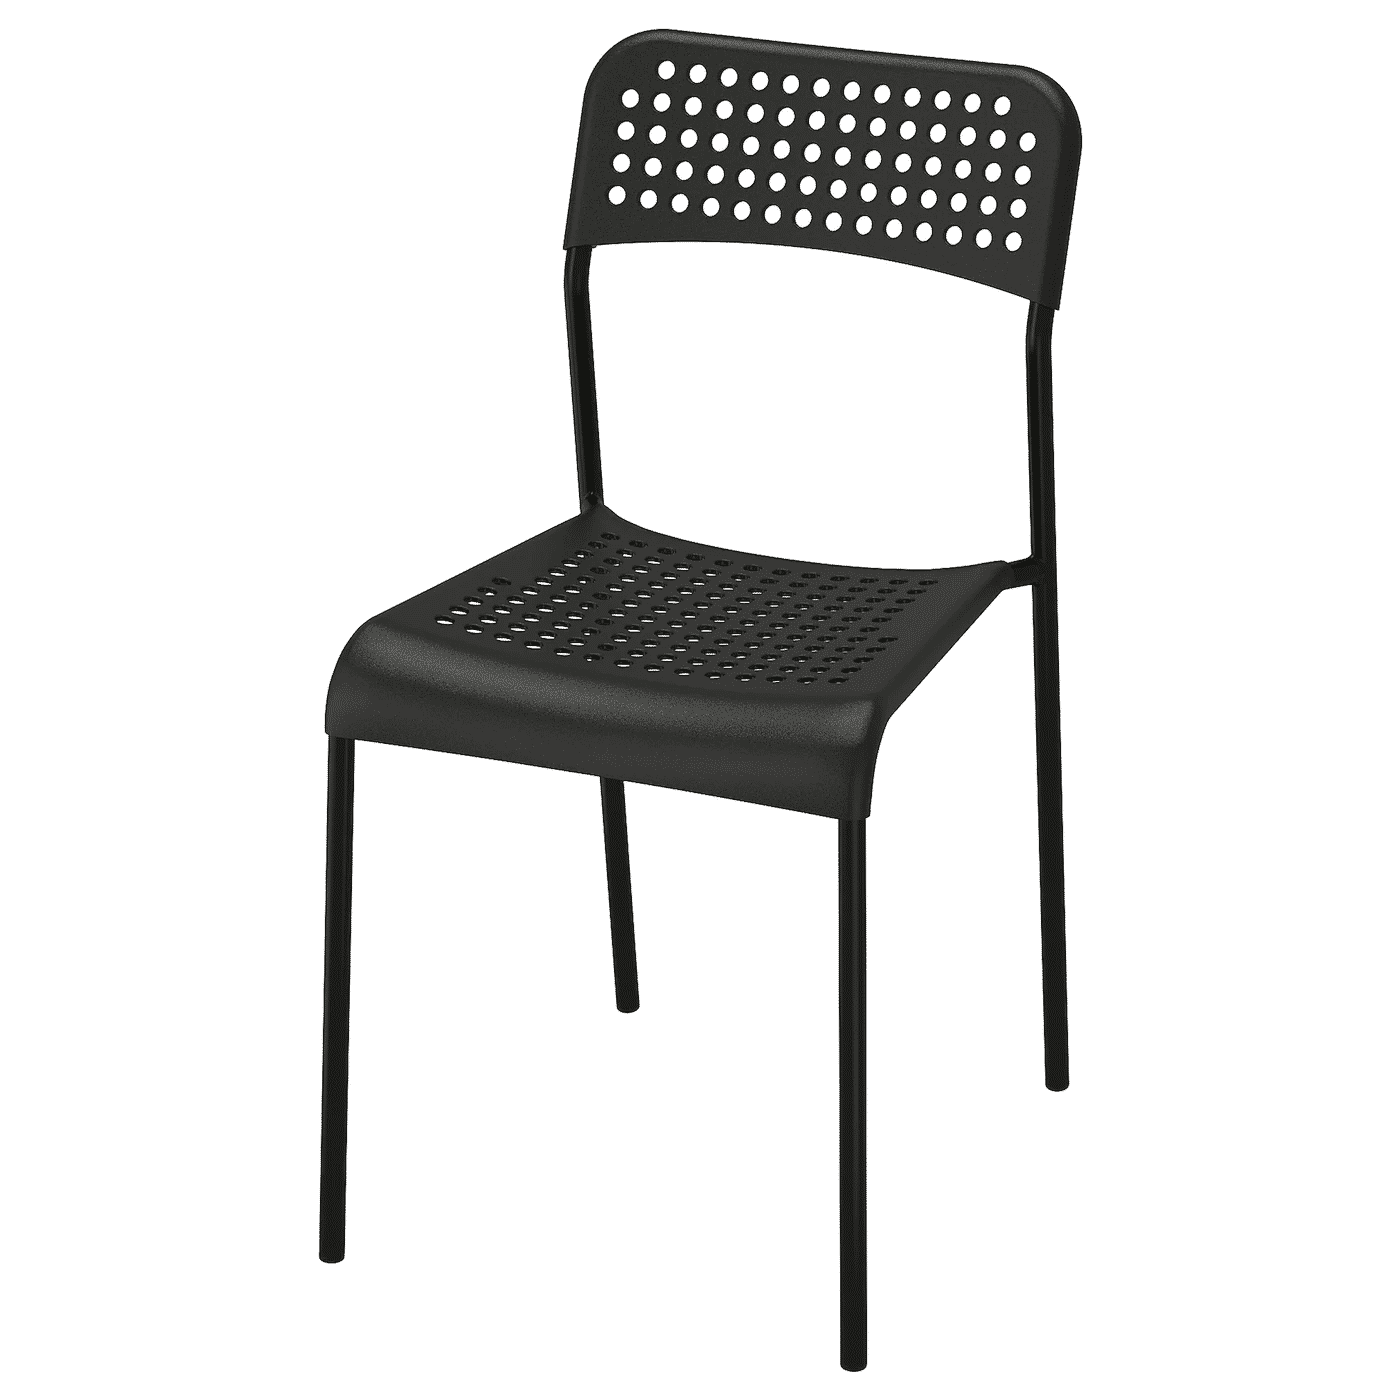 Black ADDE Chair